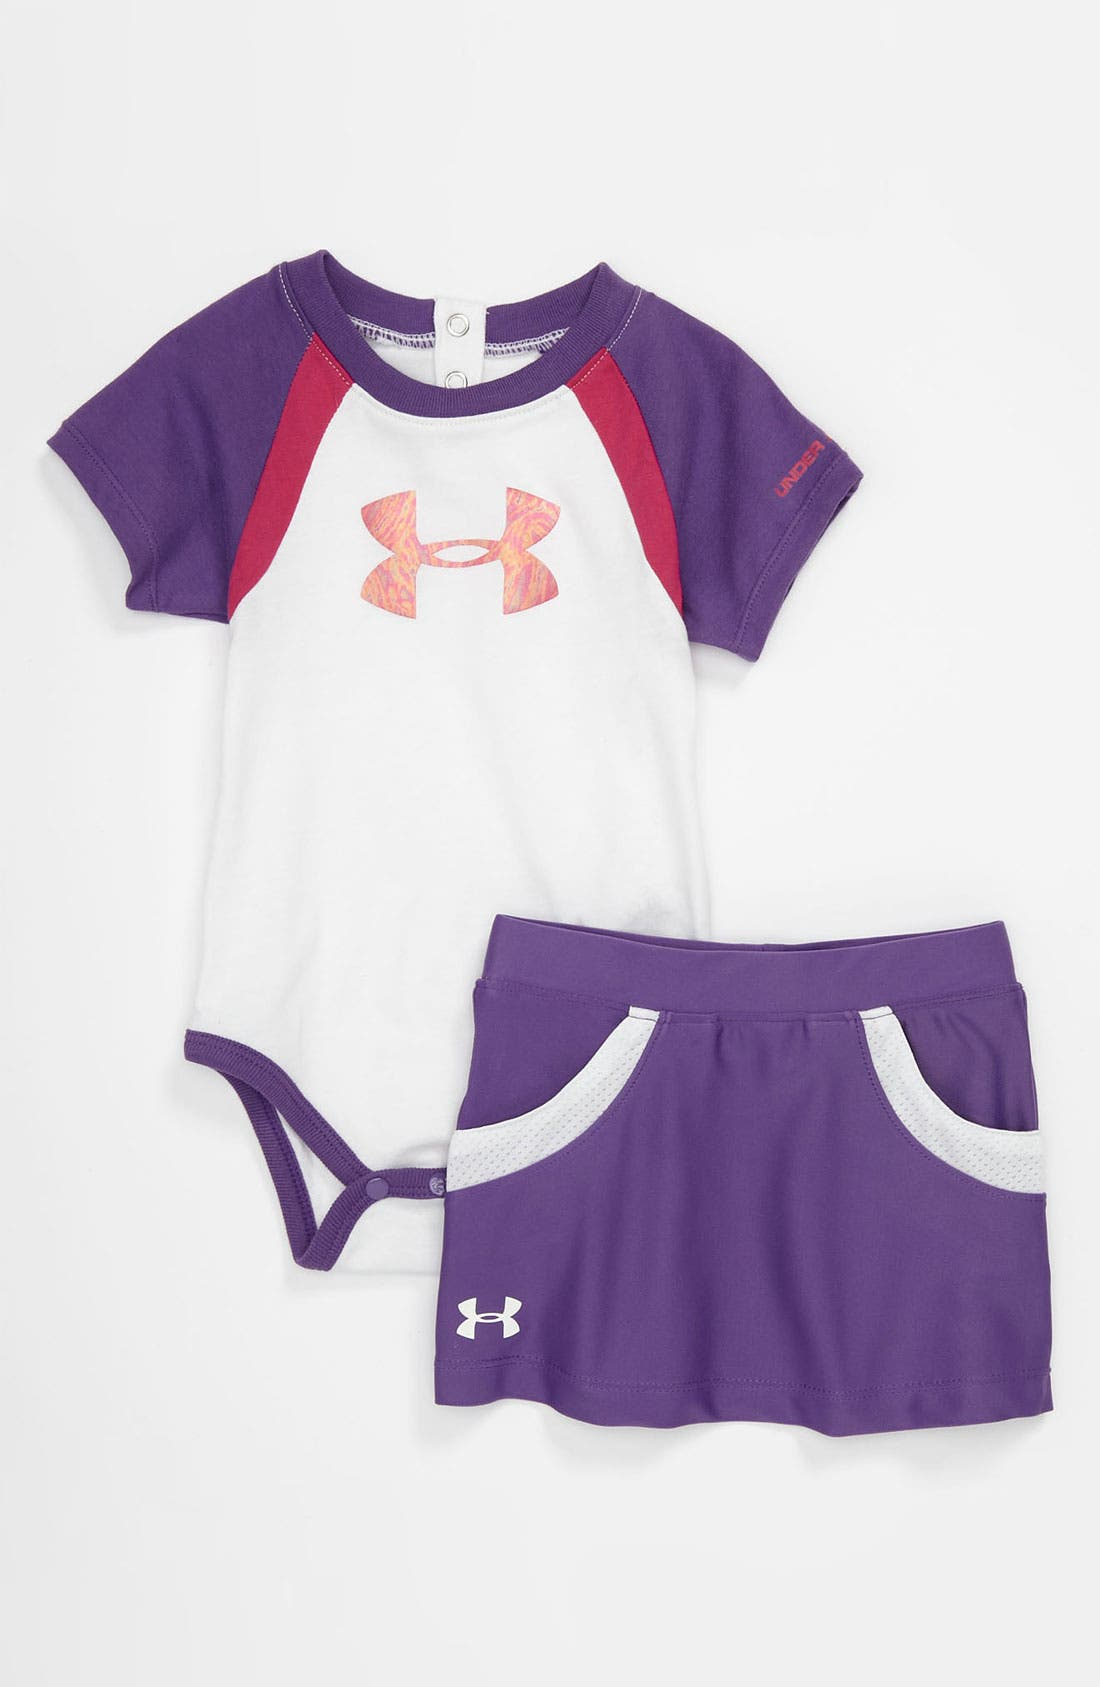 Alternate Image 1 Selected - Under Armour Bodysuit & Skirt (Baby)